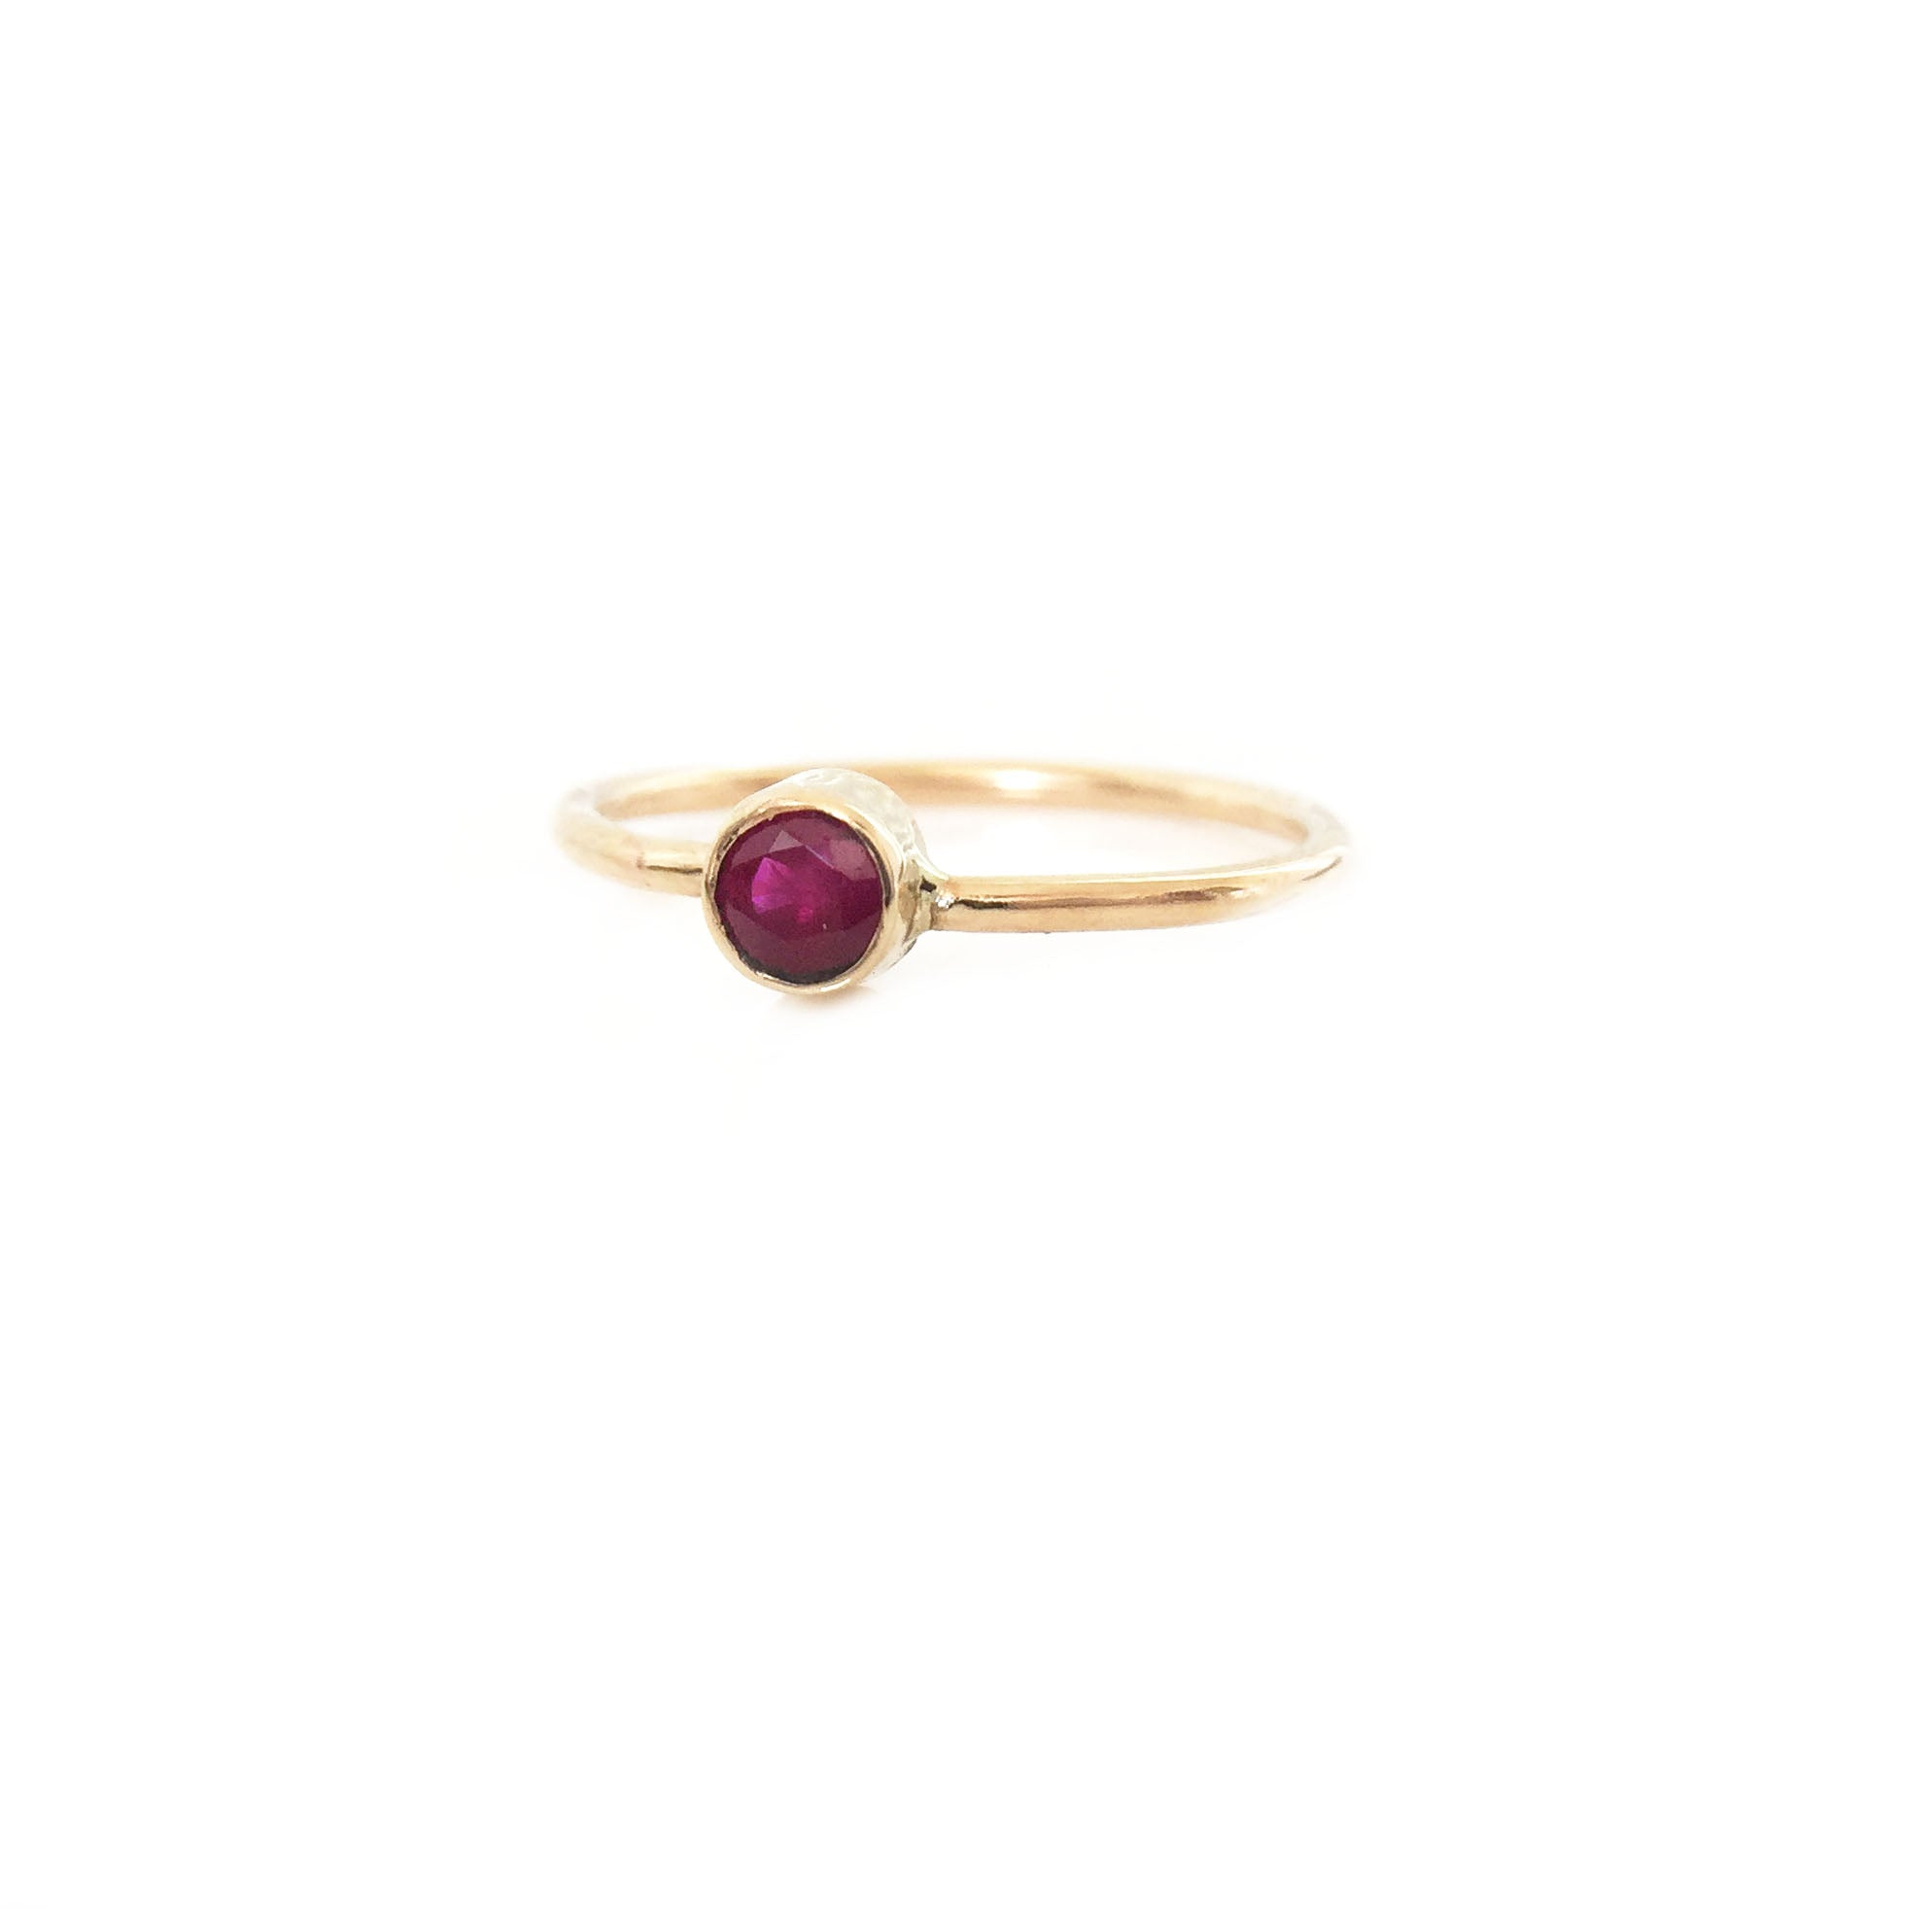 14K Gold Ruby Ring